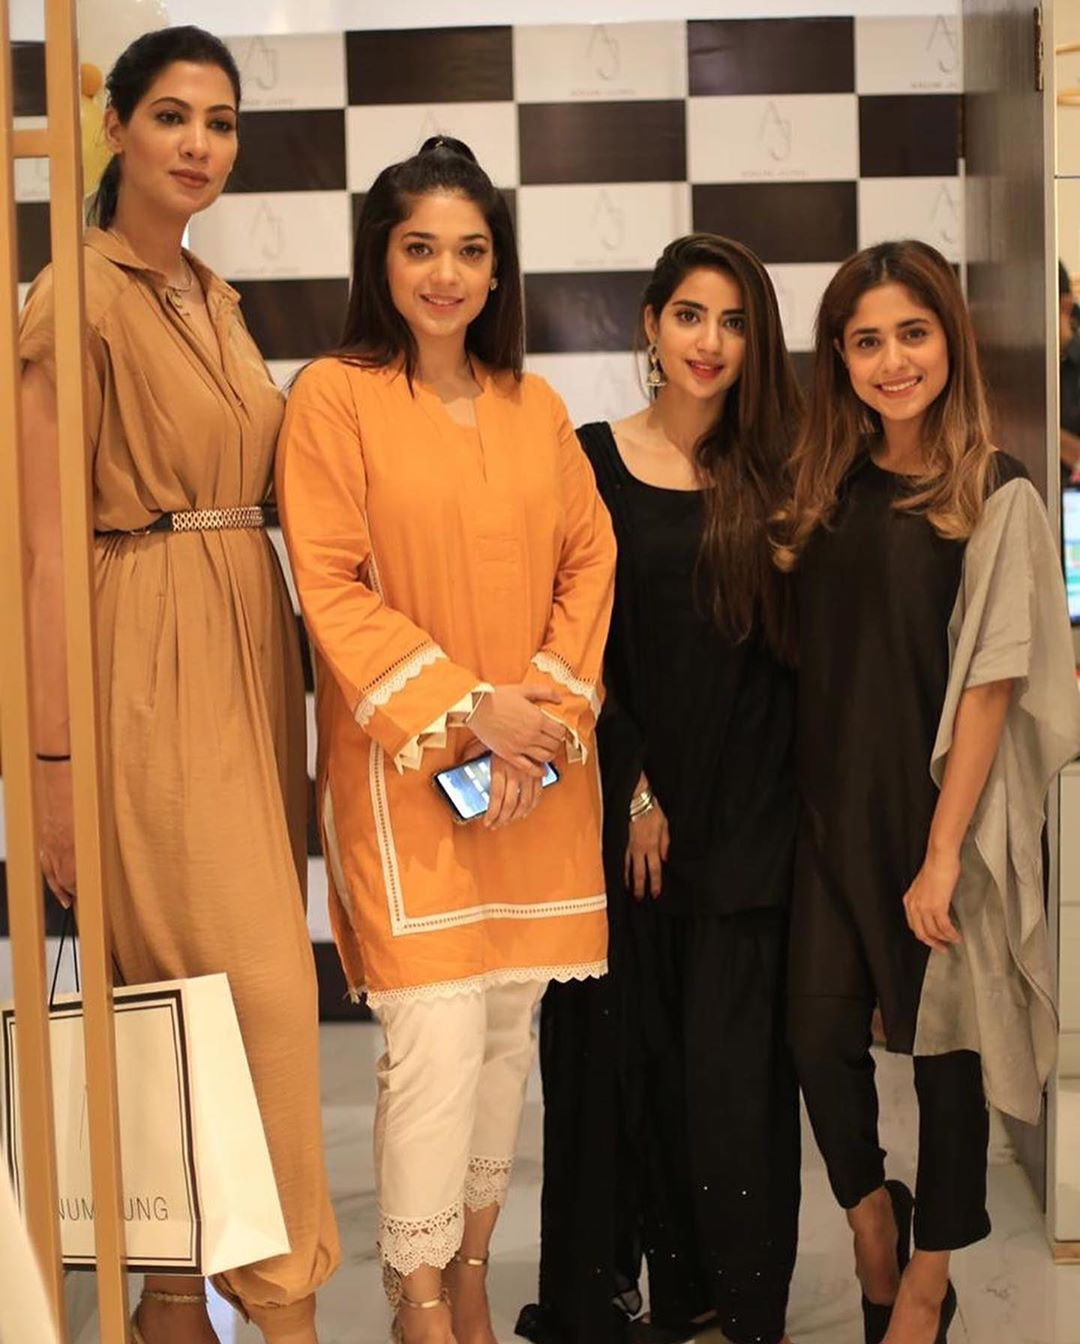 Celebrities in Sanam Jung Sister Anum Jung Launch of the new store (3)